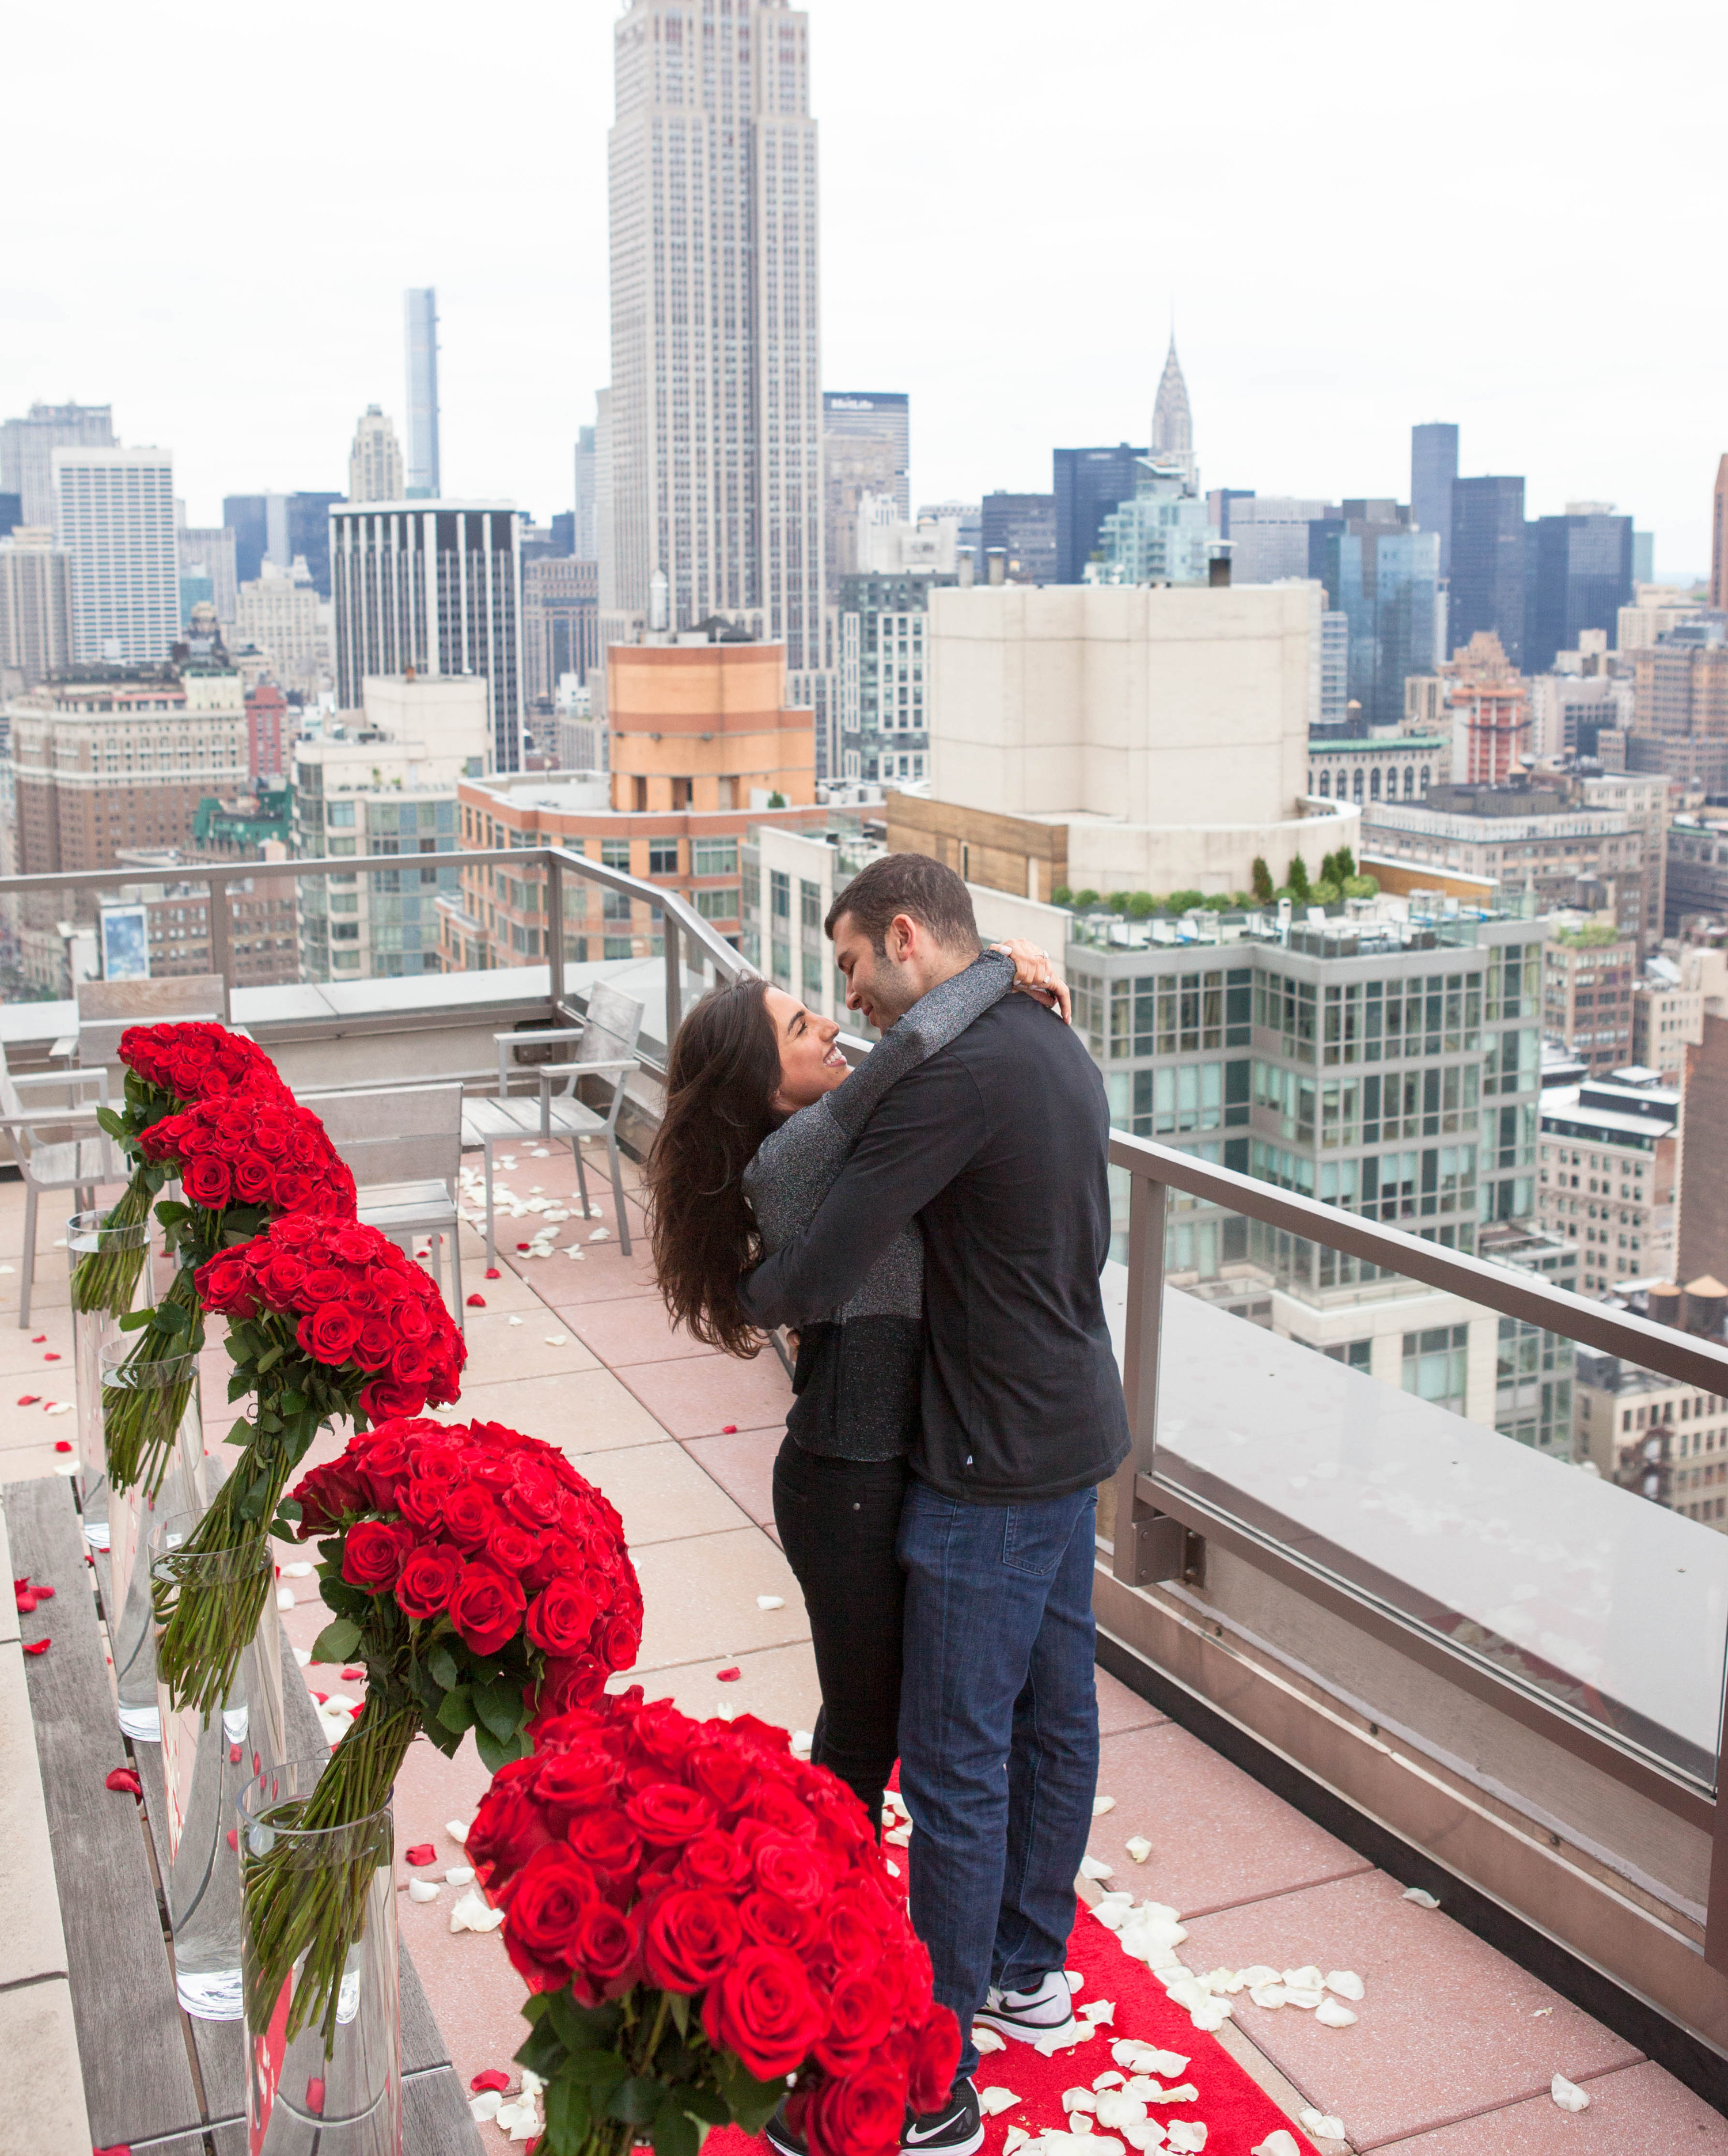 lea-joseph-proposal-couple-201-s112360-0915.jpg